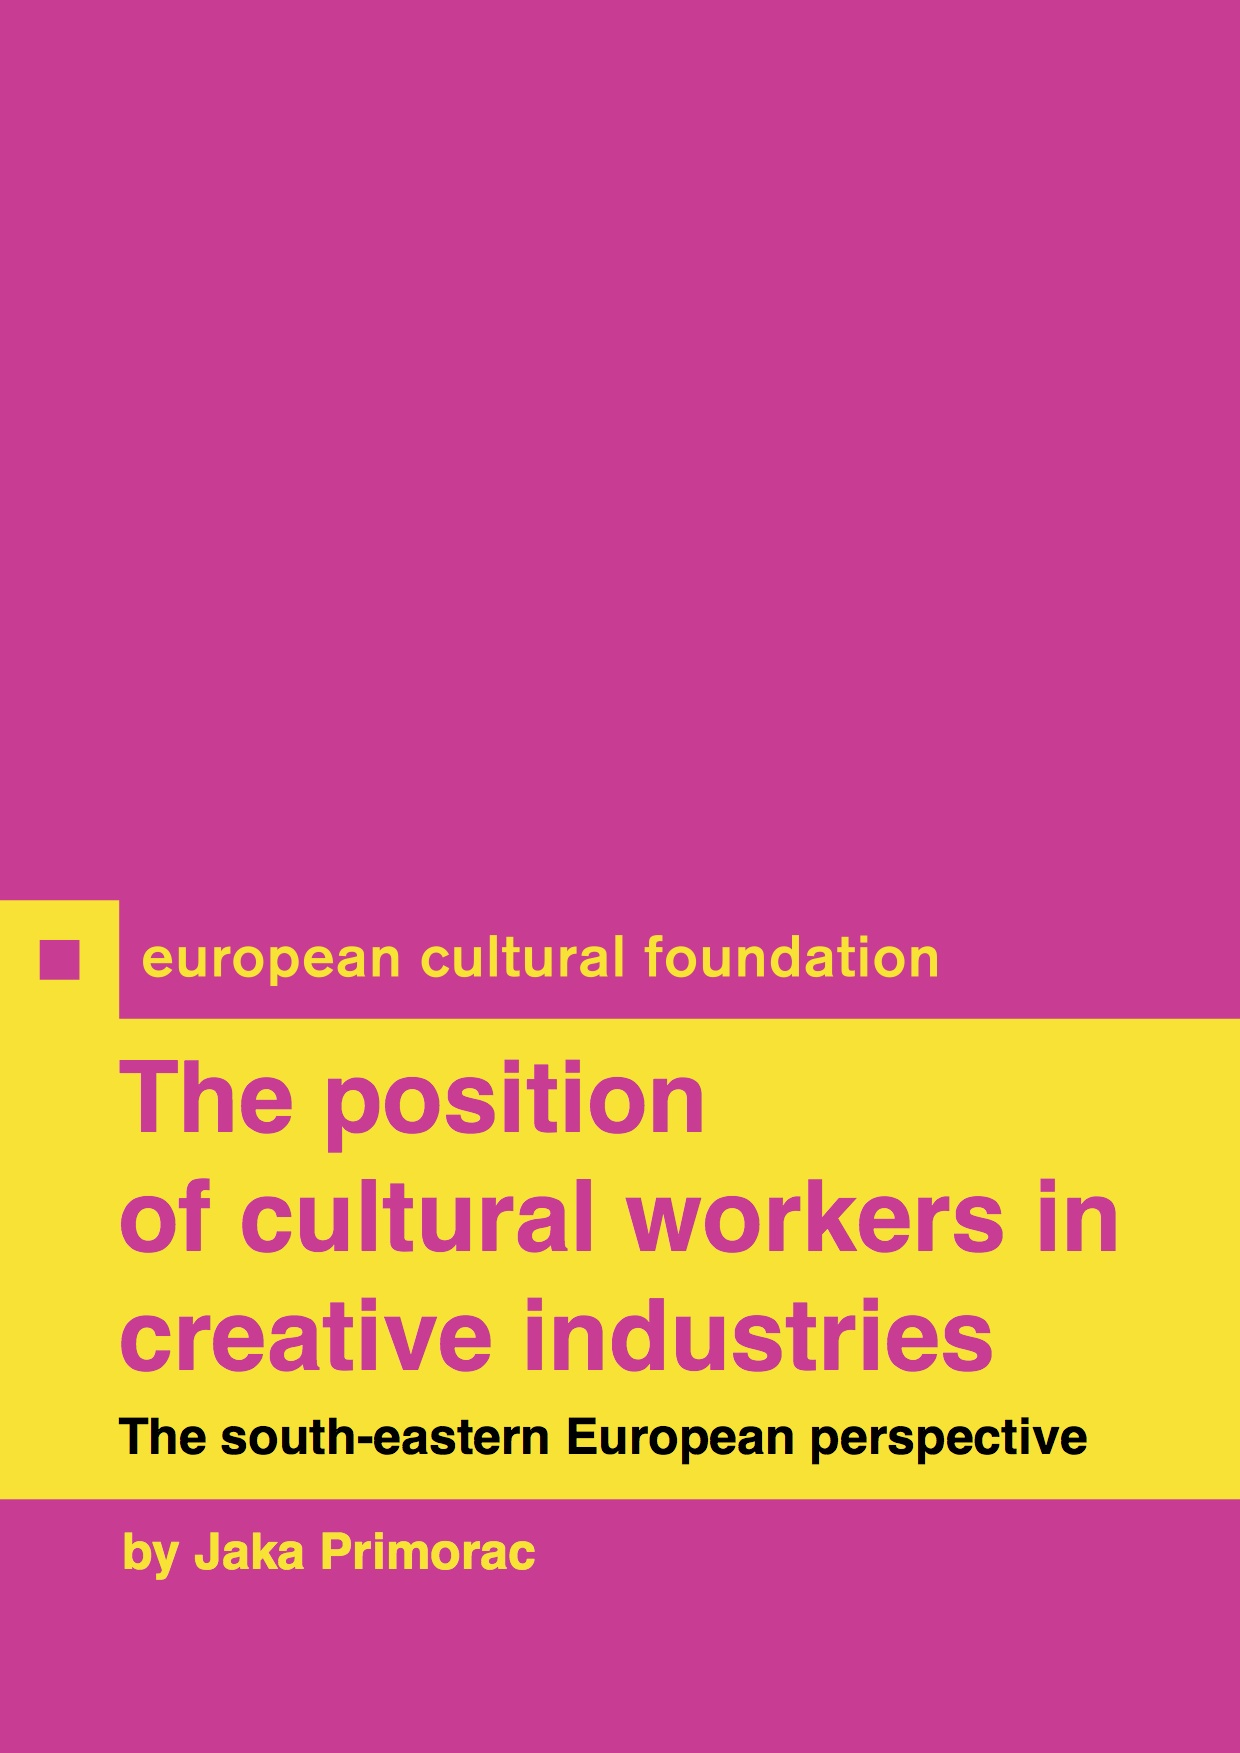 cultural_workers_position.jpg